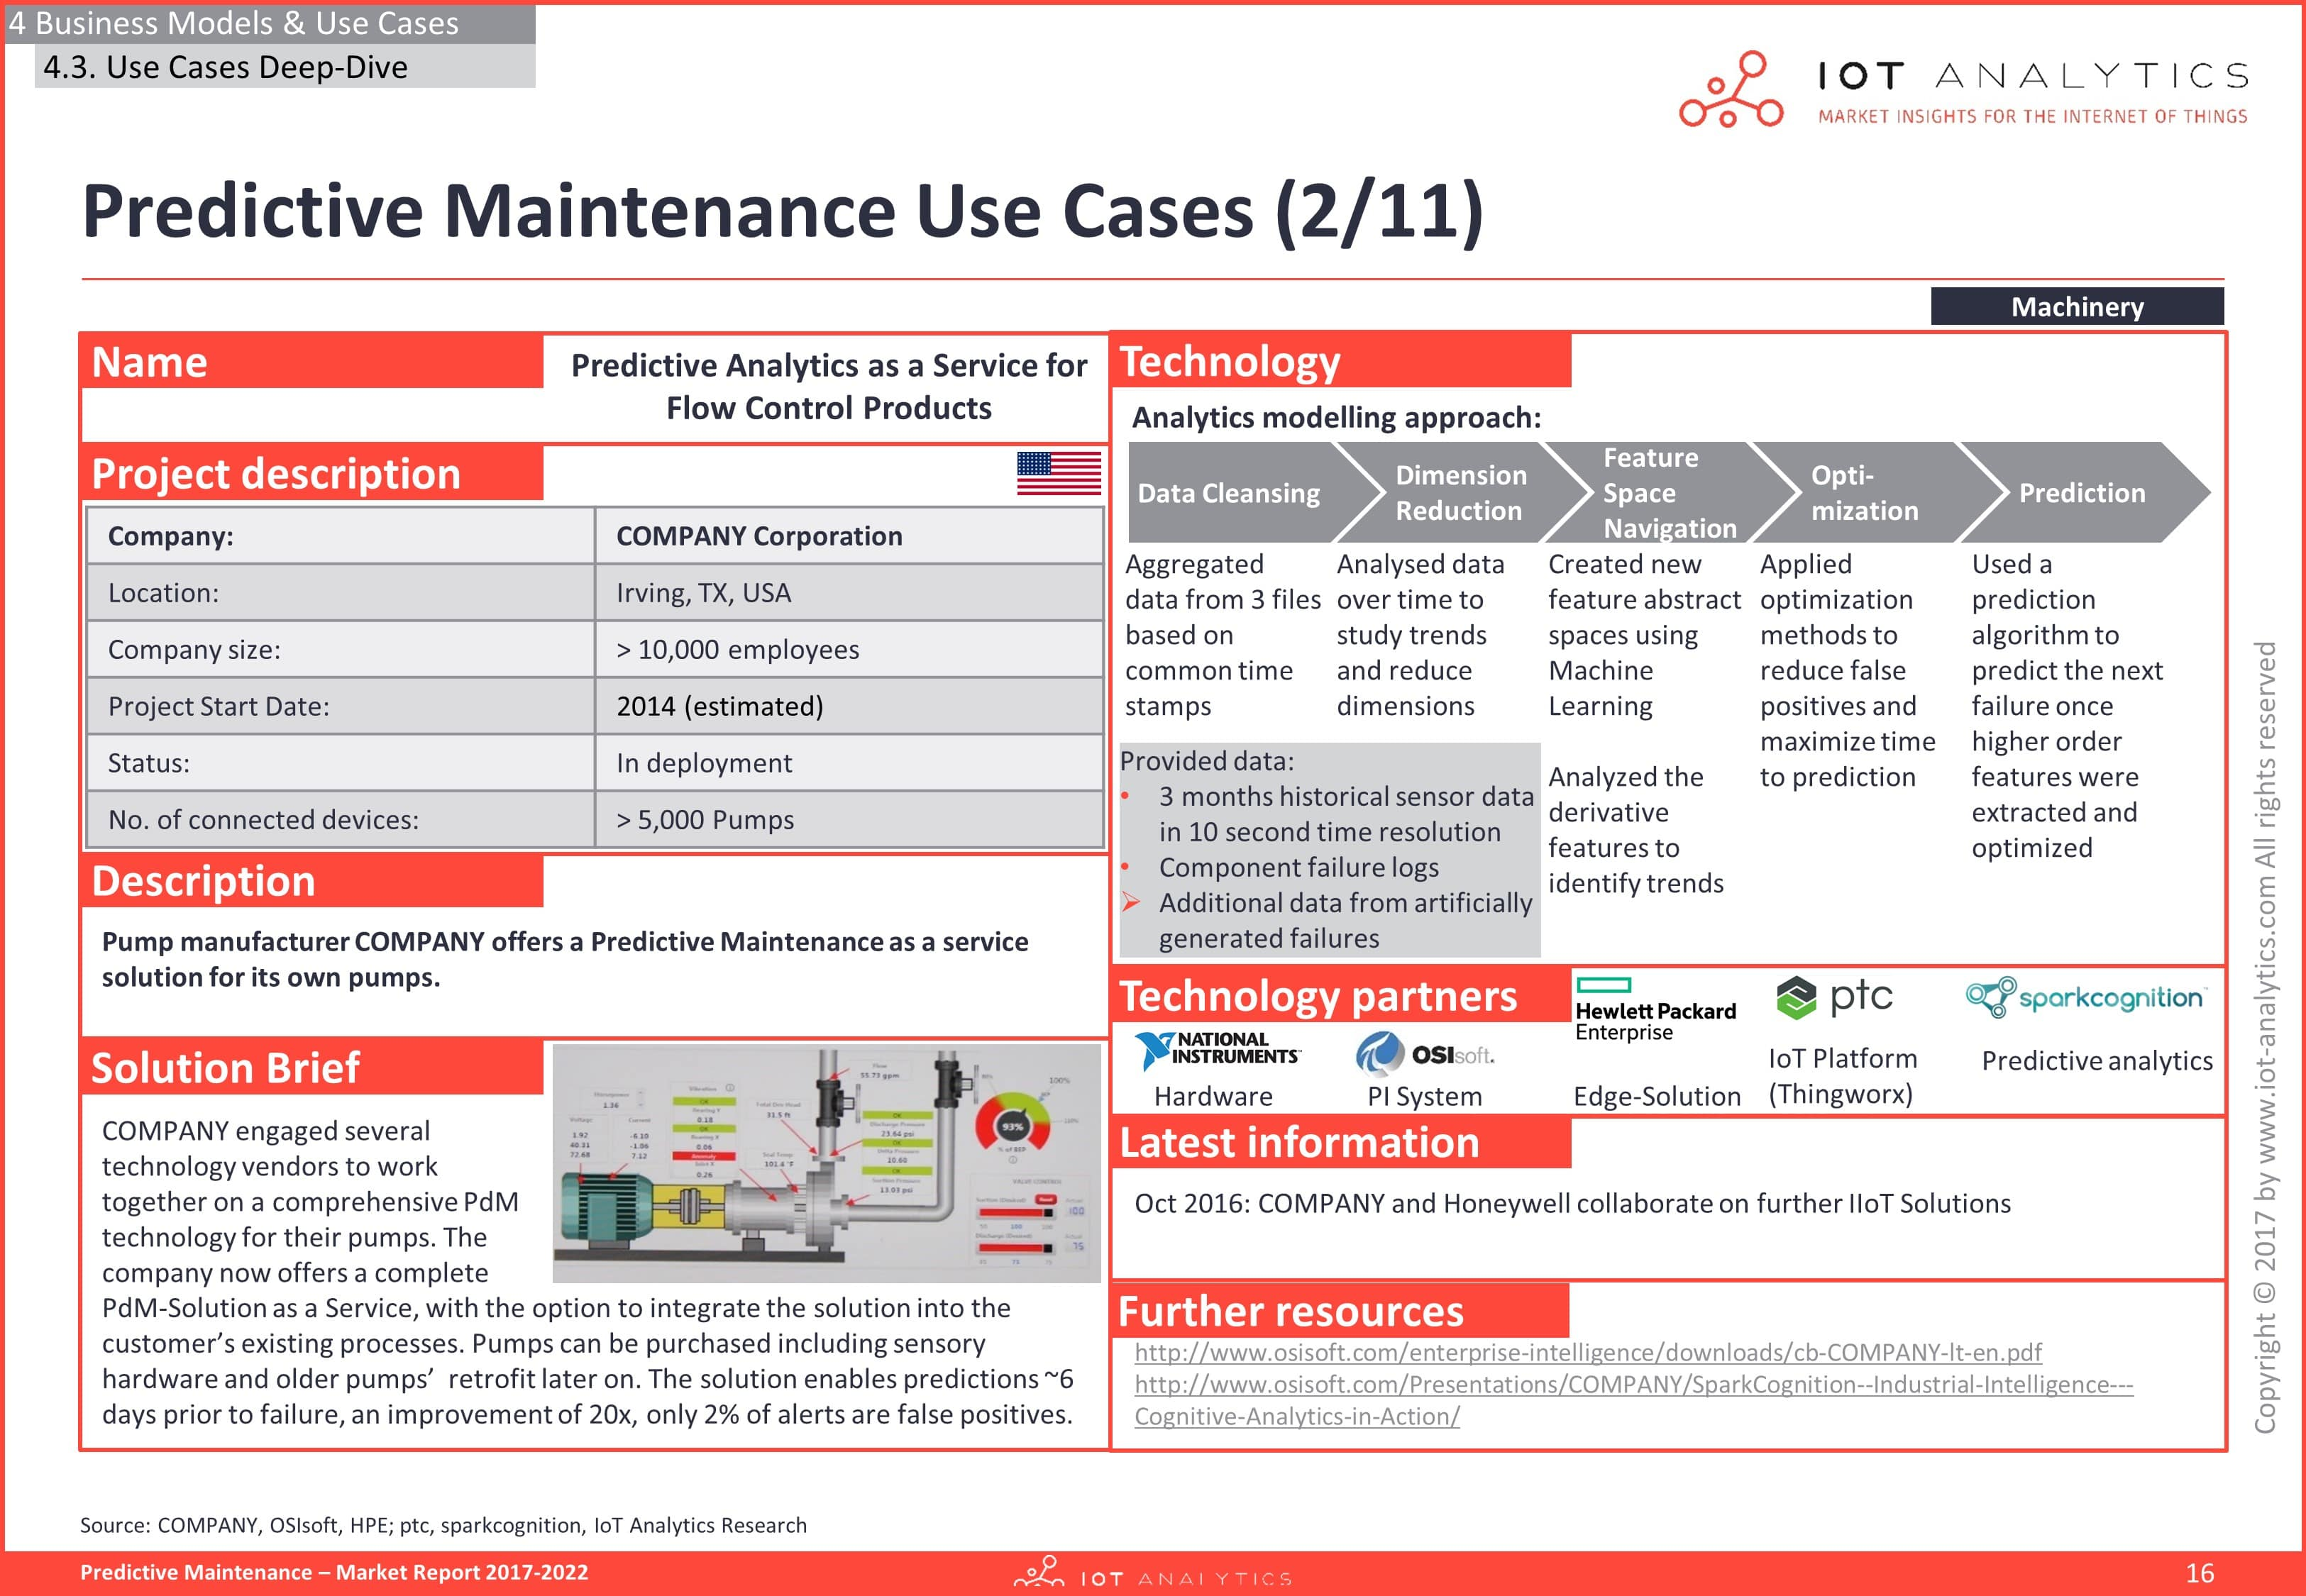 Predictive Maintenance Use Case